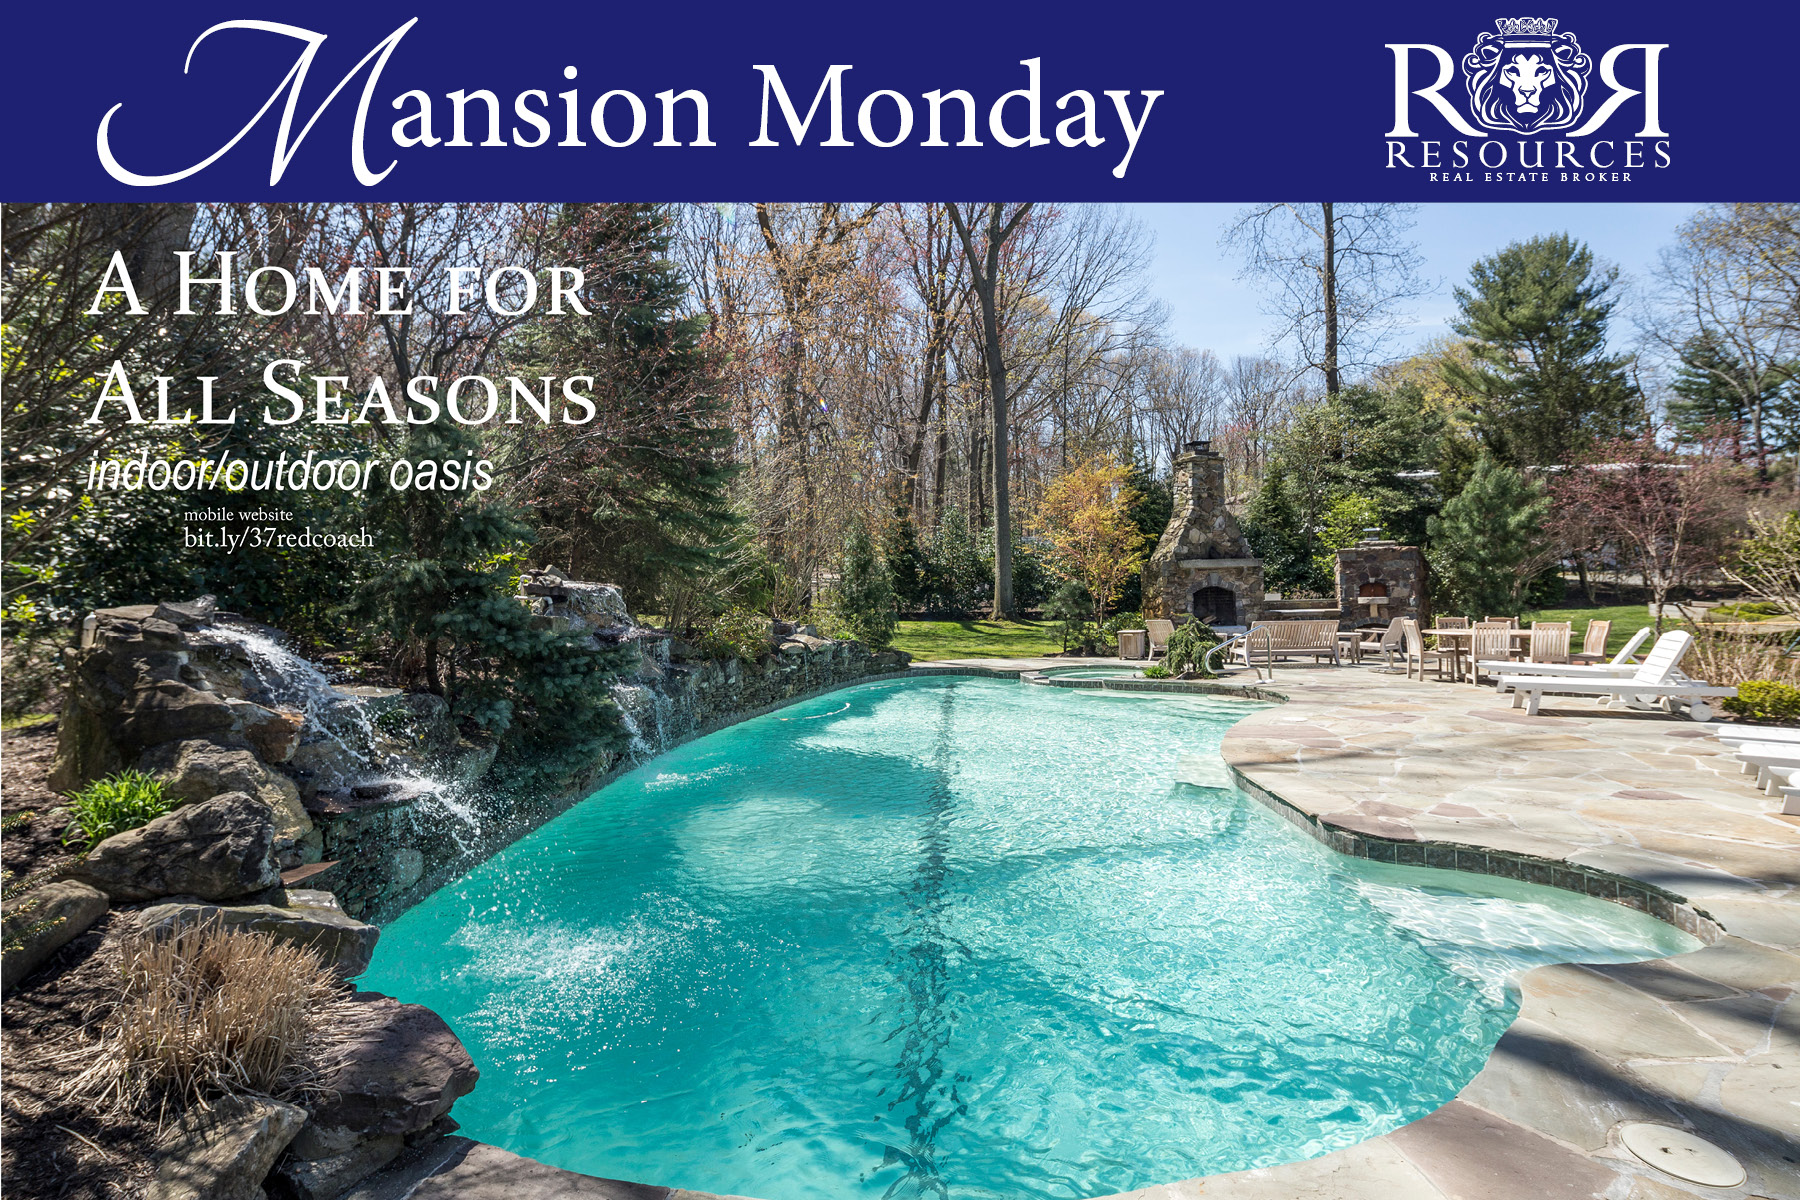 Resources Real Estate Luxury Real Estate in Monmouth County, NJ 732-212-0440